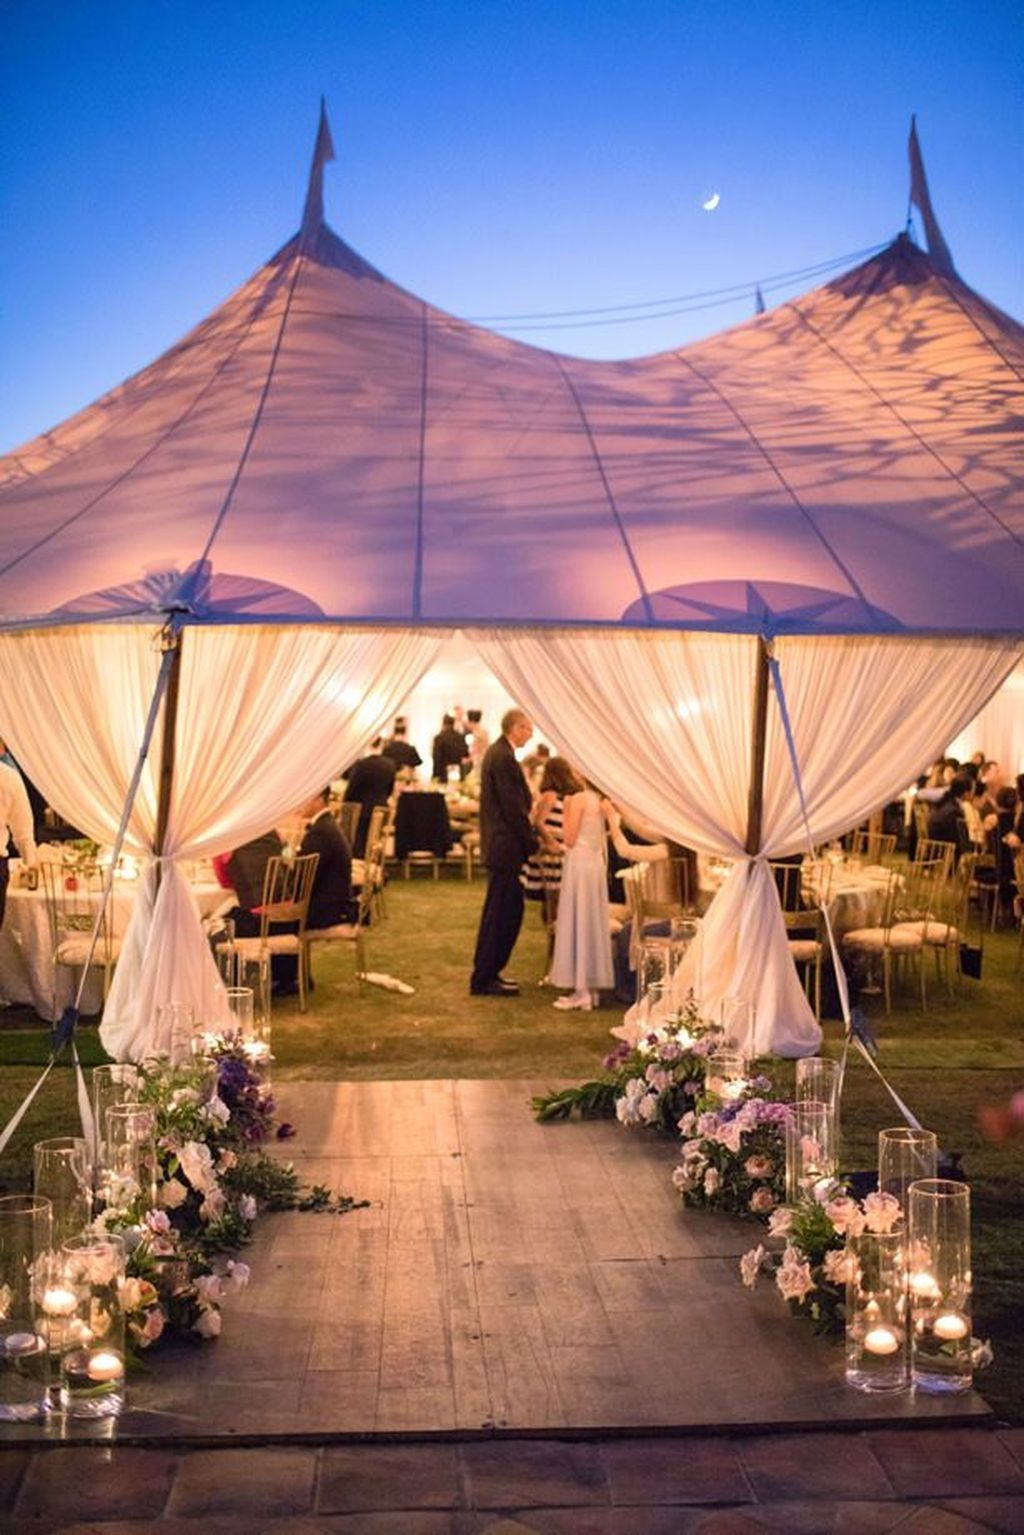 99 Hottest Wedding Decorations Ideas On A Budget Tent